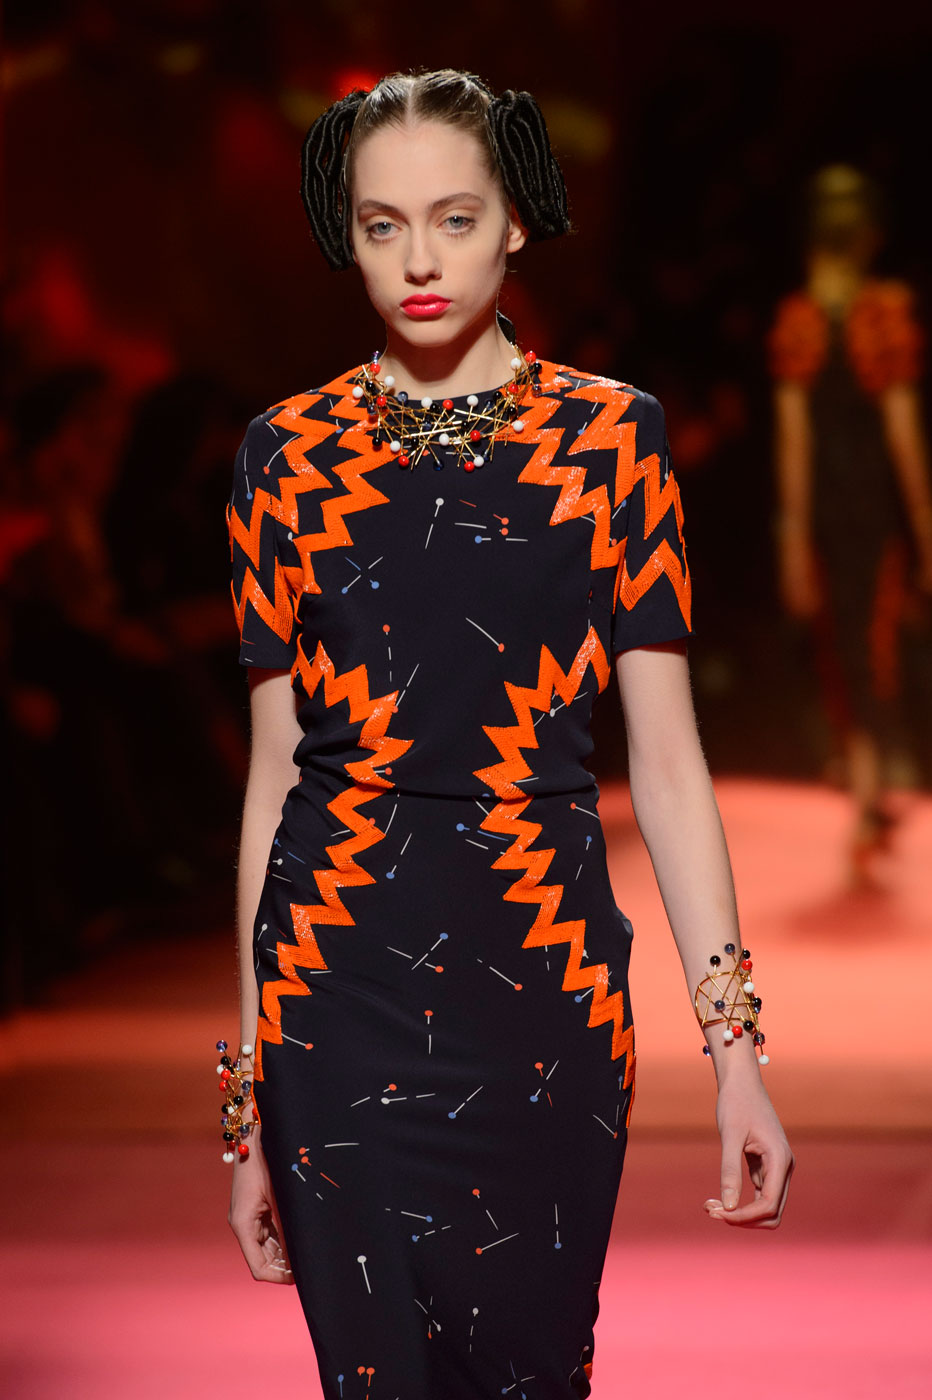 Schiaparelli-fashion-runway-show-haute-couture-paris-spring-summer-2015-the-impression-45